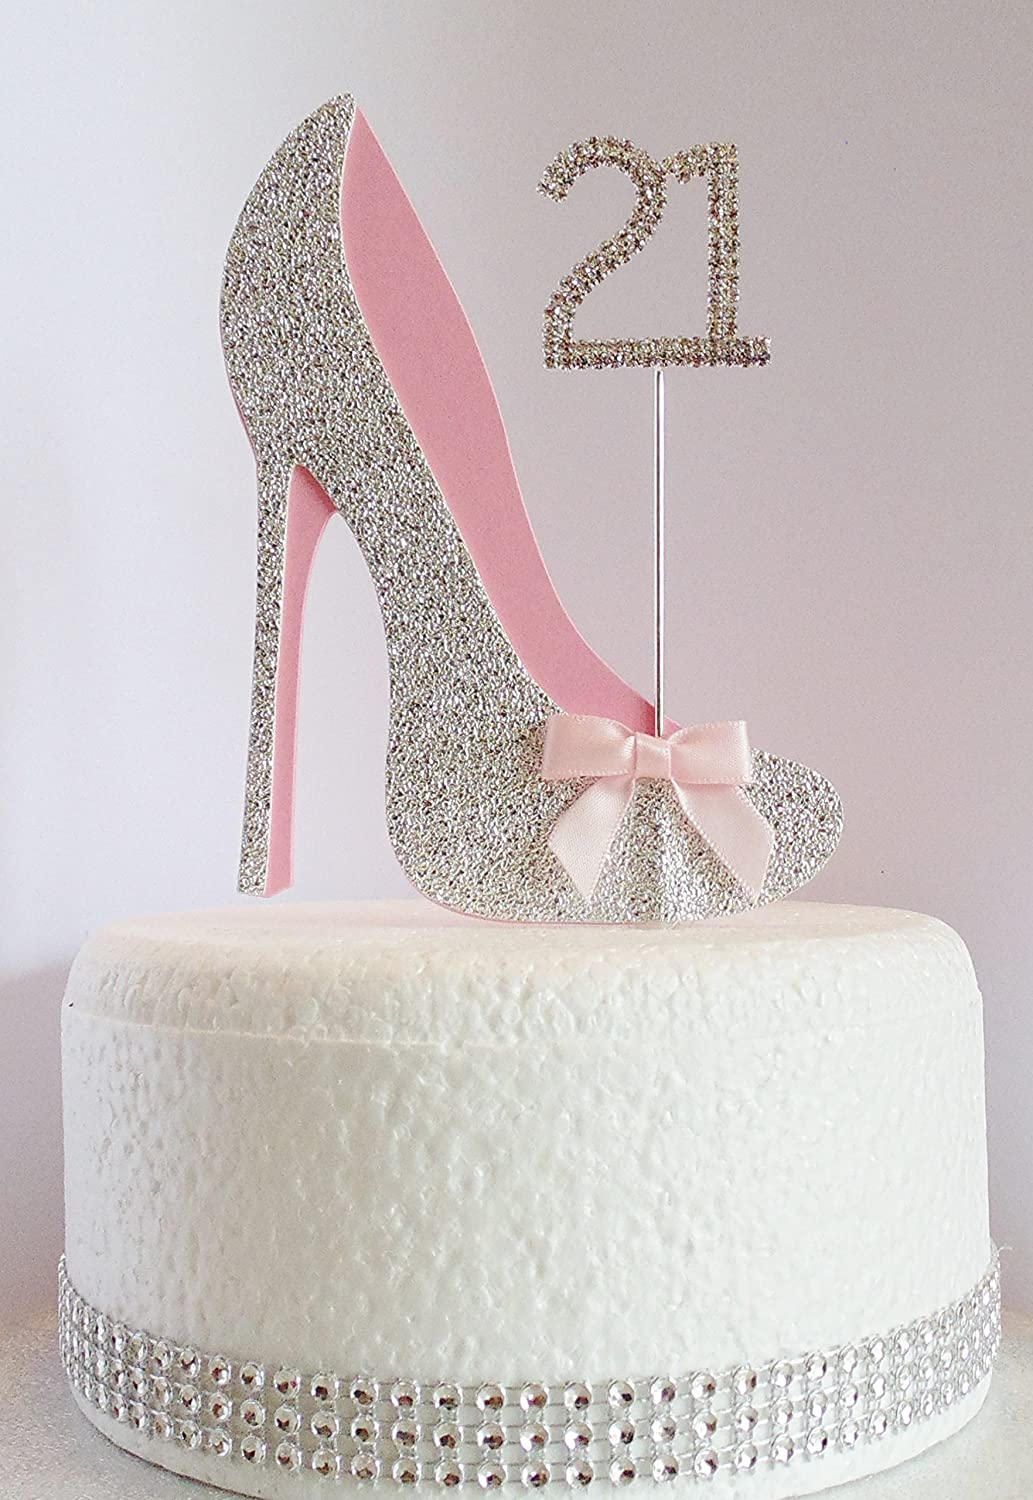 21st Birthday Cake Ideas.21st Birthday Cake Decoration Shoe With Diamante Number Non Edible Silver Pink Age 21